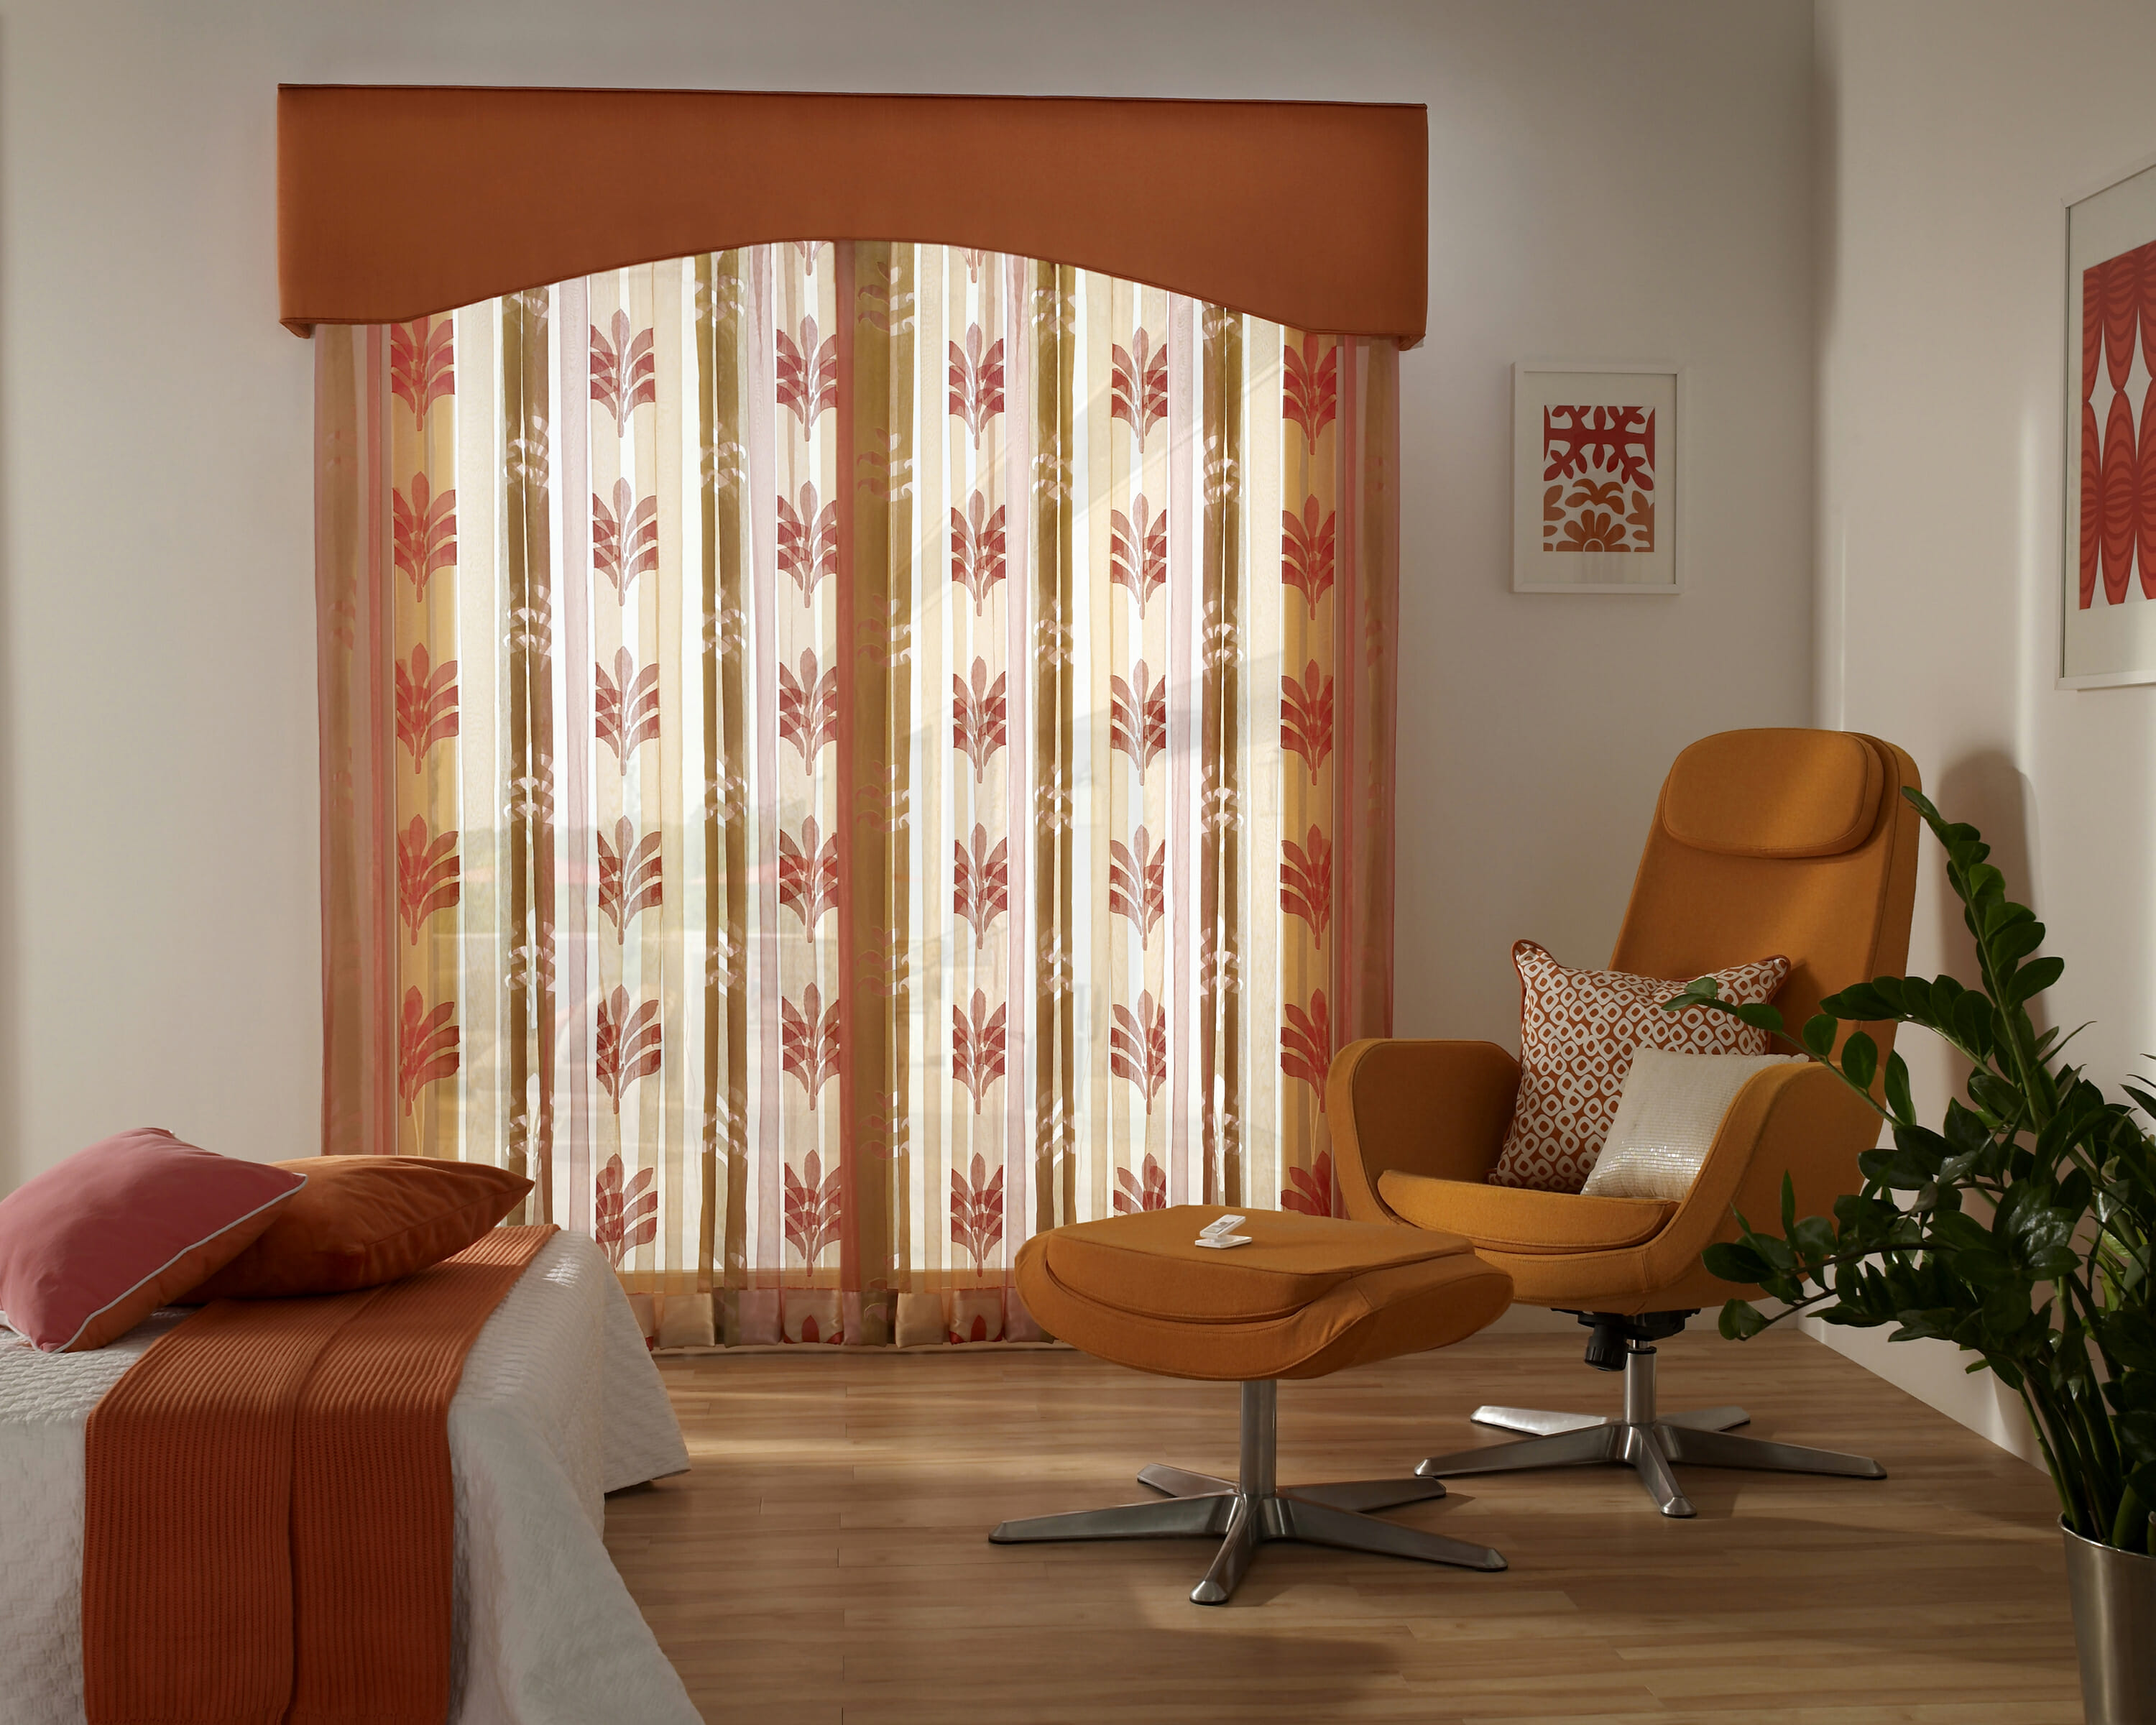 valance home curtains room windowvalances beautiful curtain valances windows ideas and your for living livi cute decorating window